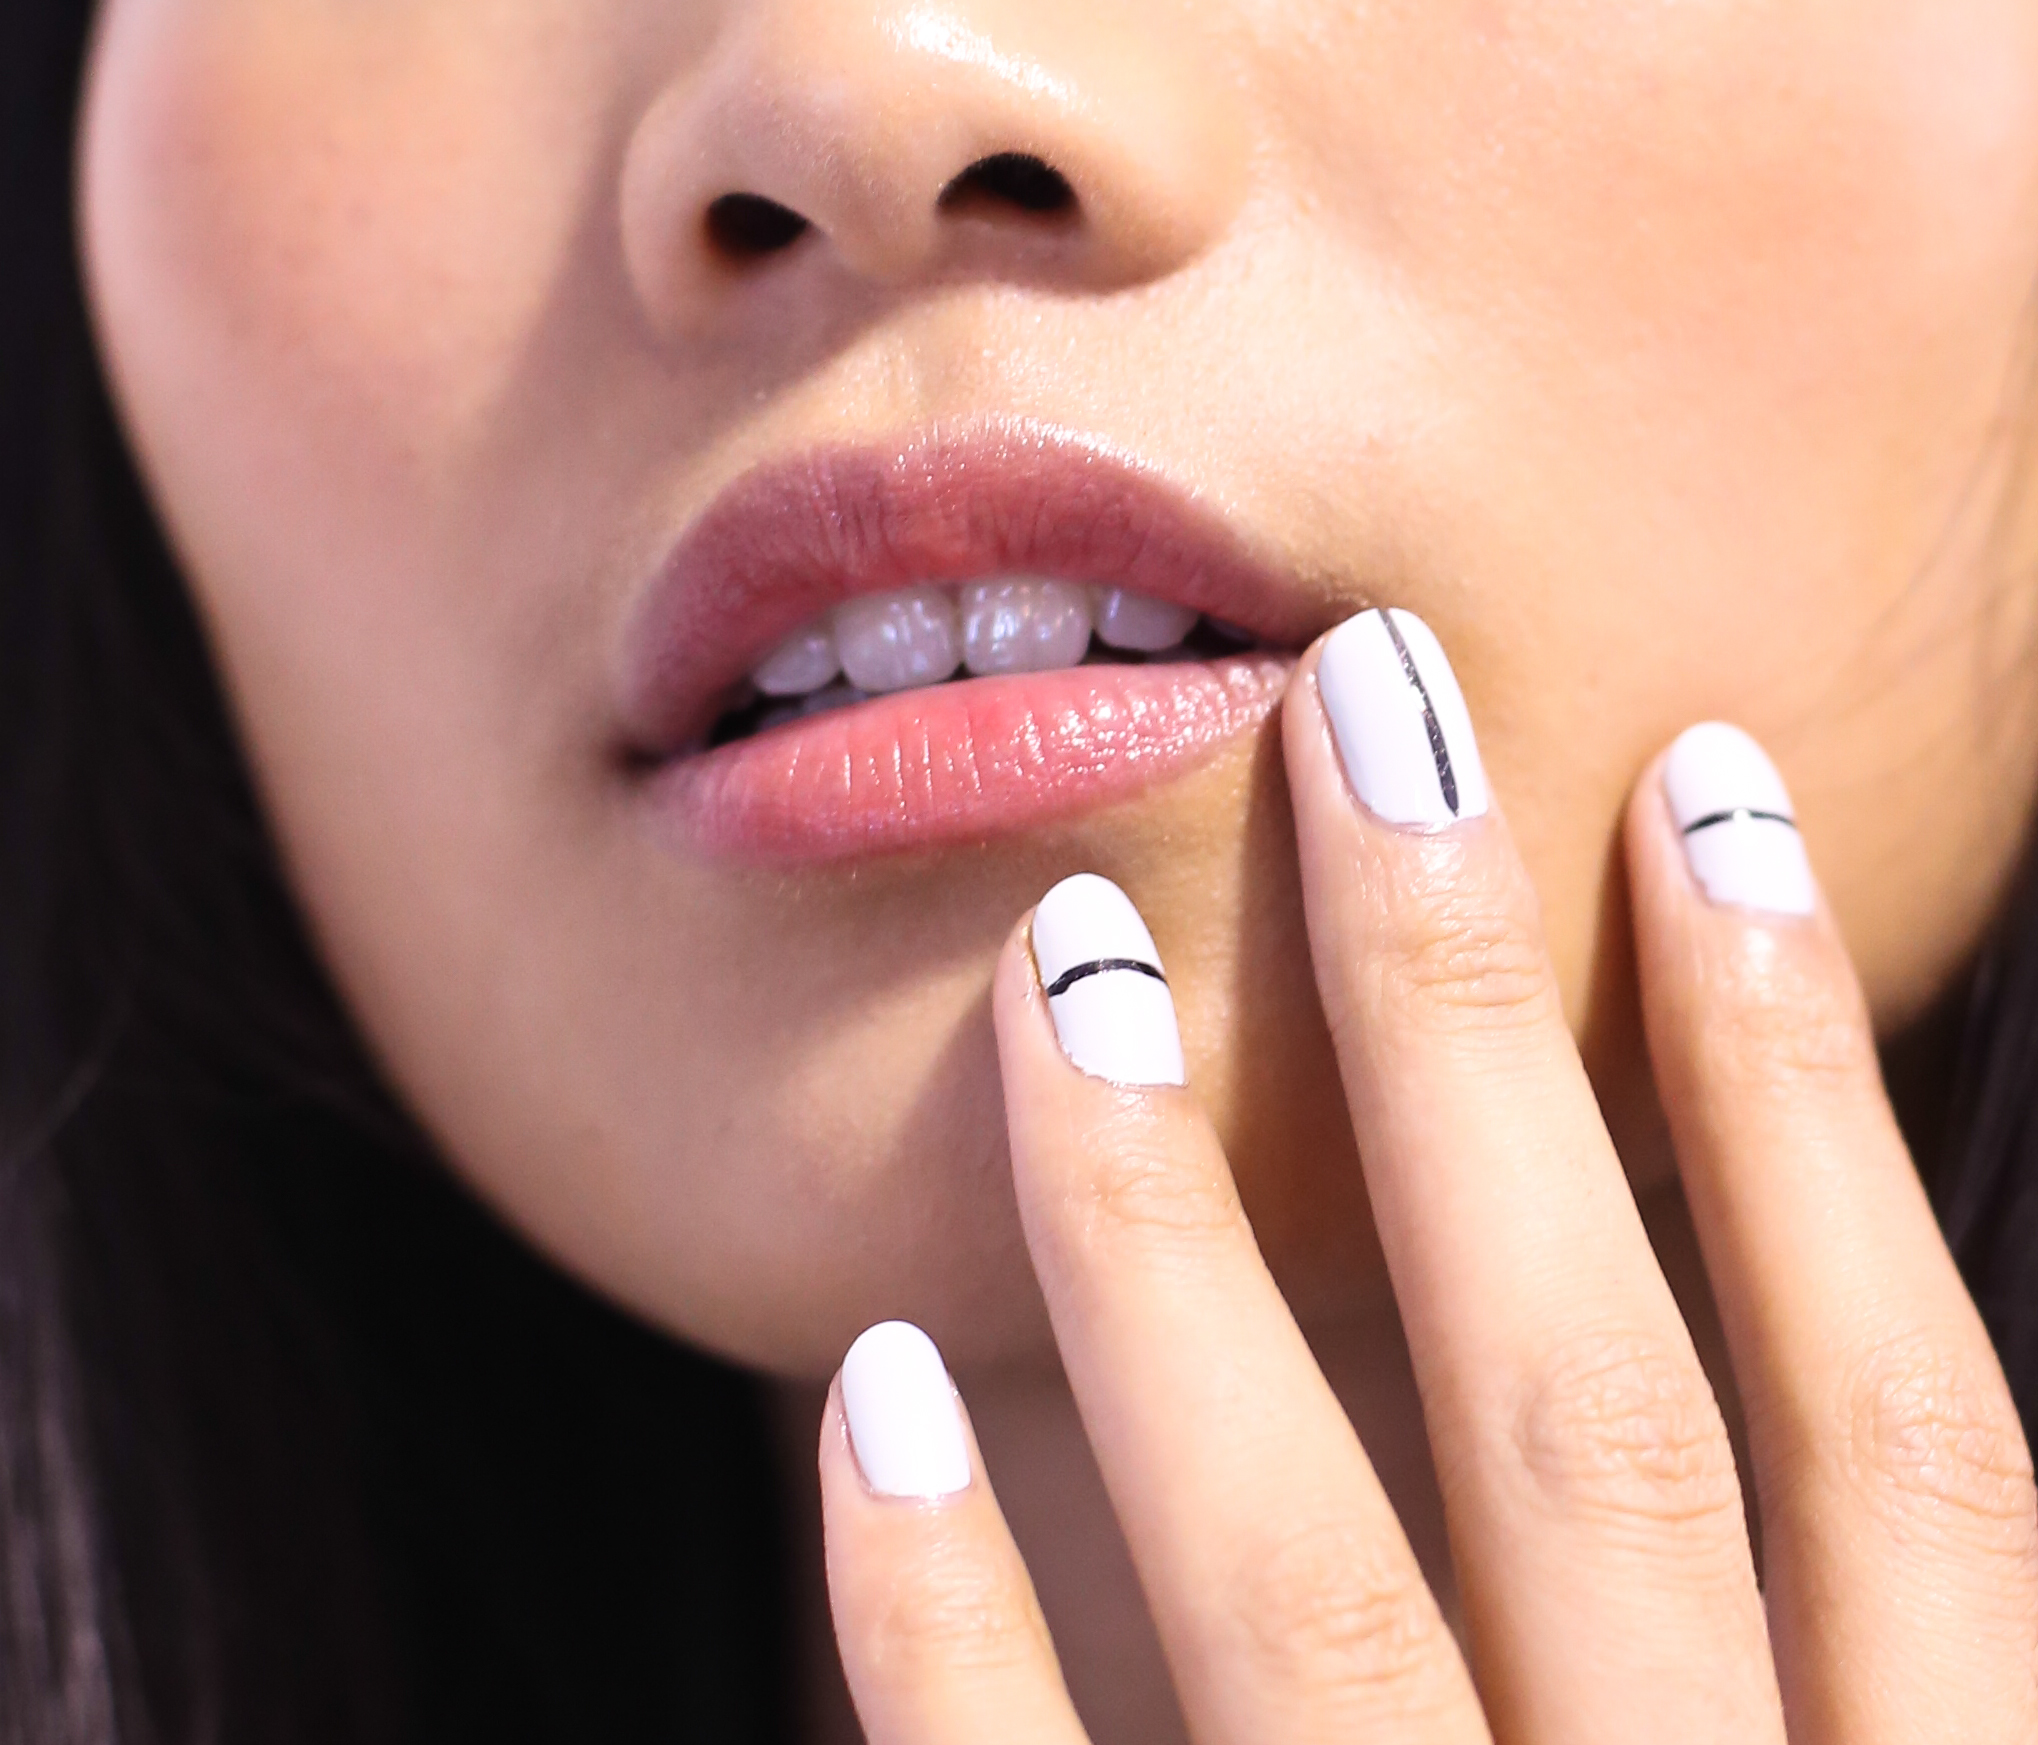 NEW YORK, NY - SEPTEMBER 07:  A model poses wearing JINsoon Nail Lacquer during JINsoon For Tibi Spring/Summer 2014 at Pier 59 on September 7, 2013 in New York City.  (Photo by Anna Webber/Getty Images for JINsoon)